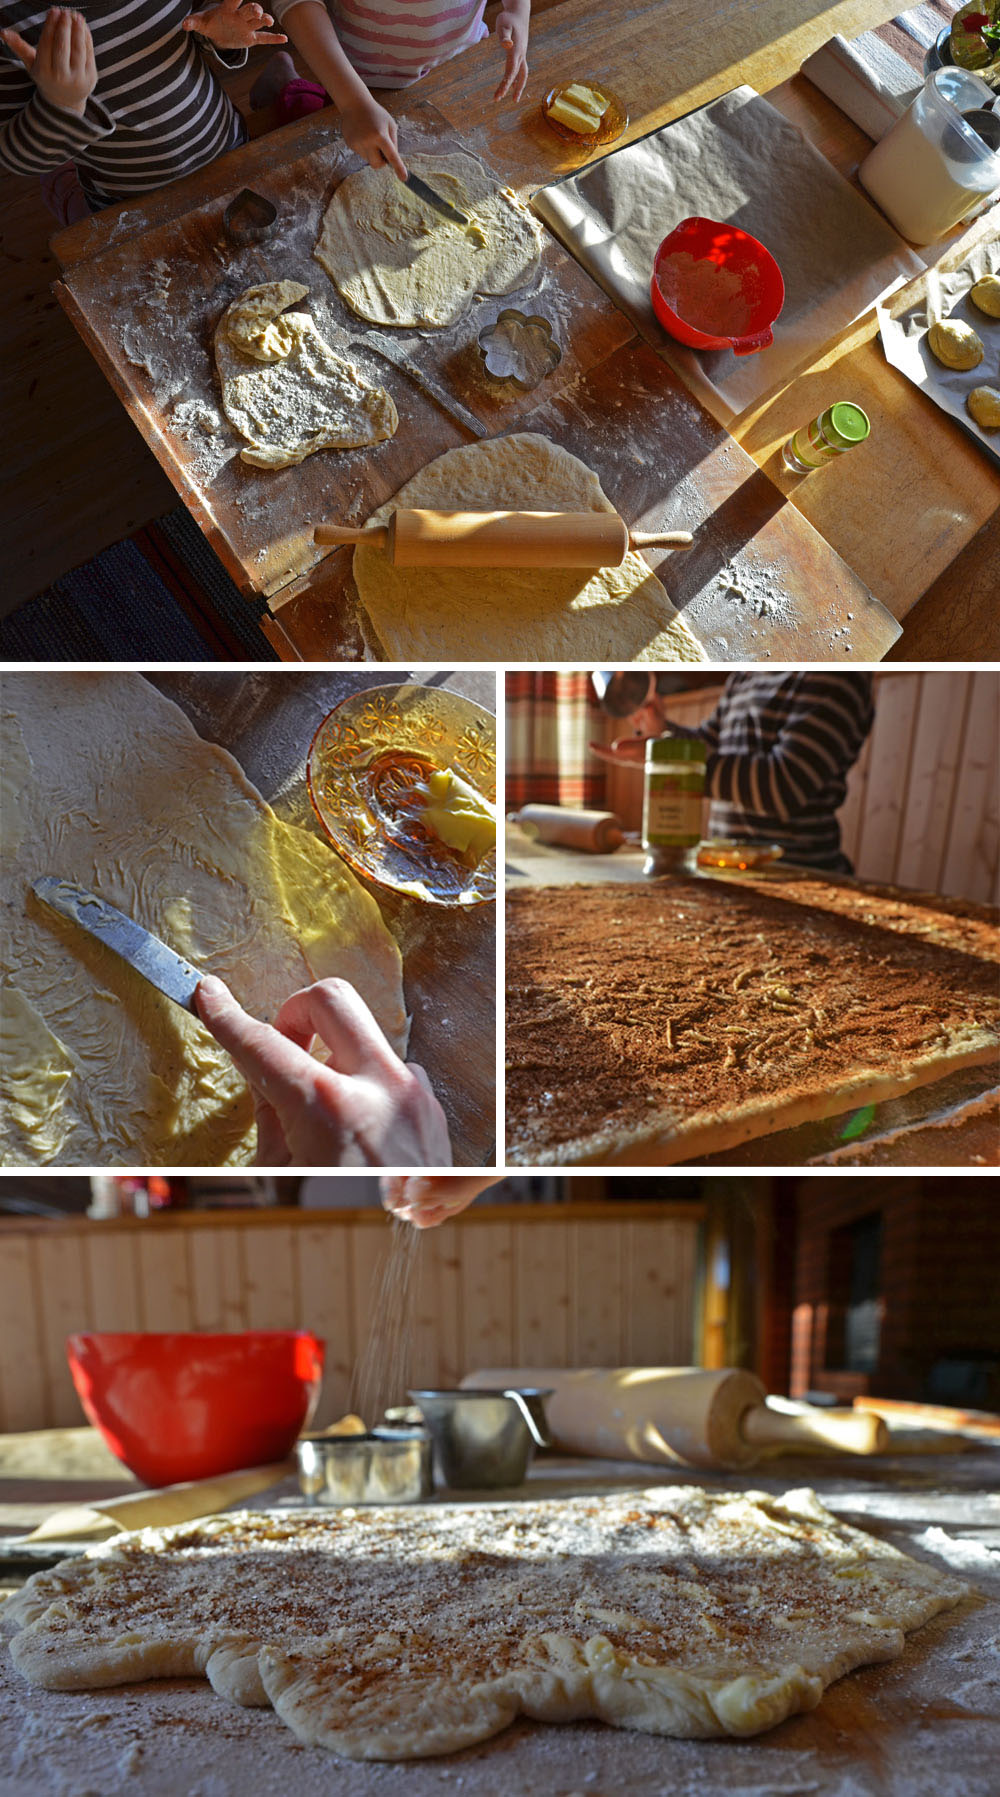 How to make cinnamon rolls - Preparing the filling - SaimaaLife.com